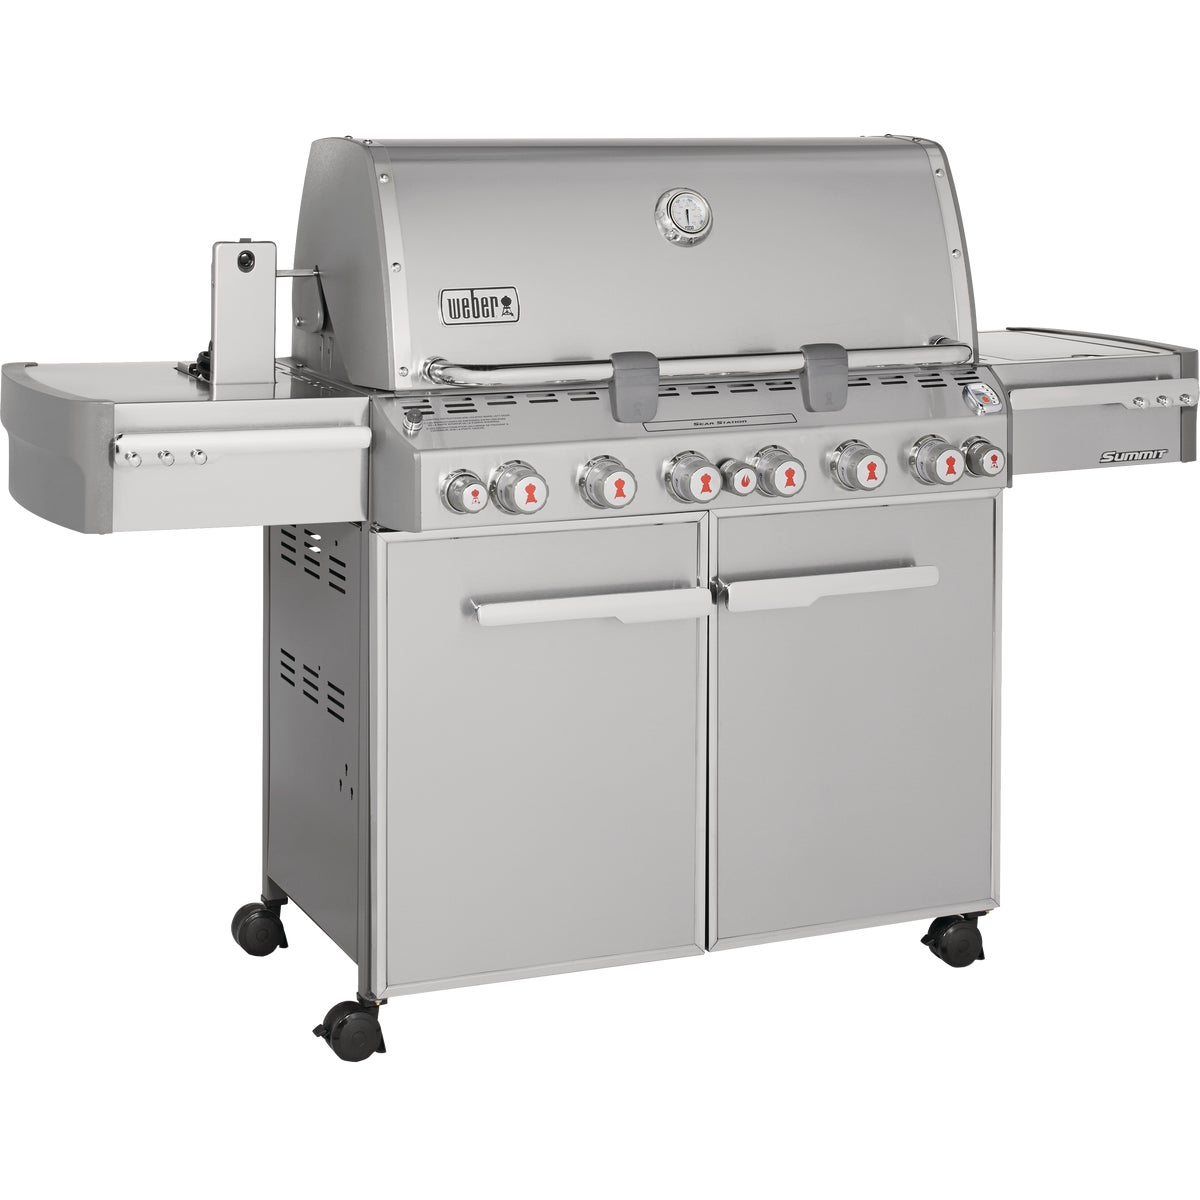 Weber-Stephen Genesis Summit S-670 Stainless Steel Gas Grill 7370001 at Sears.com